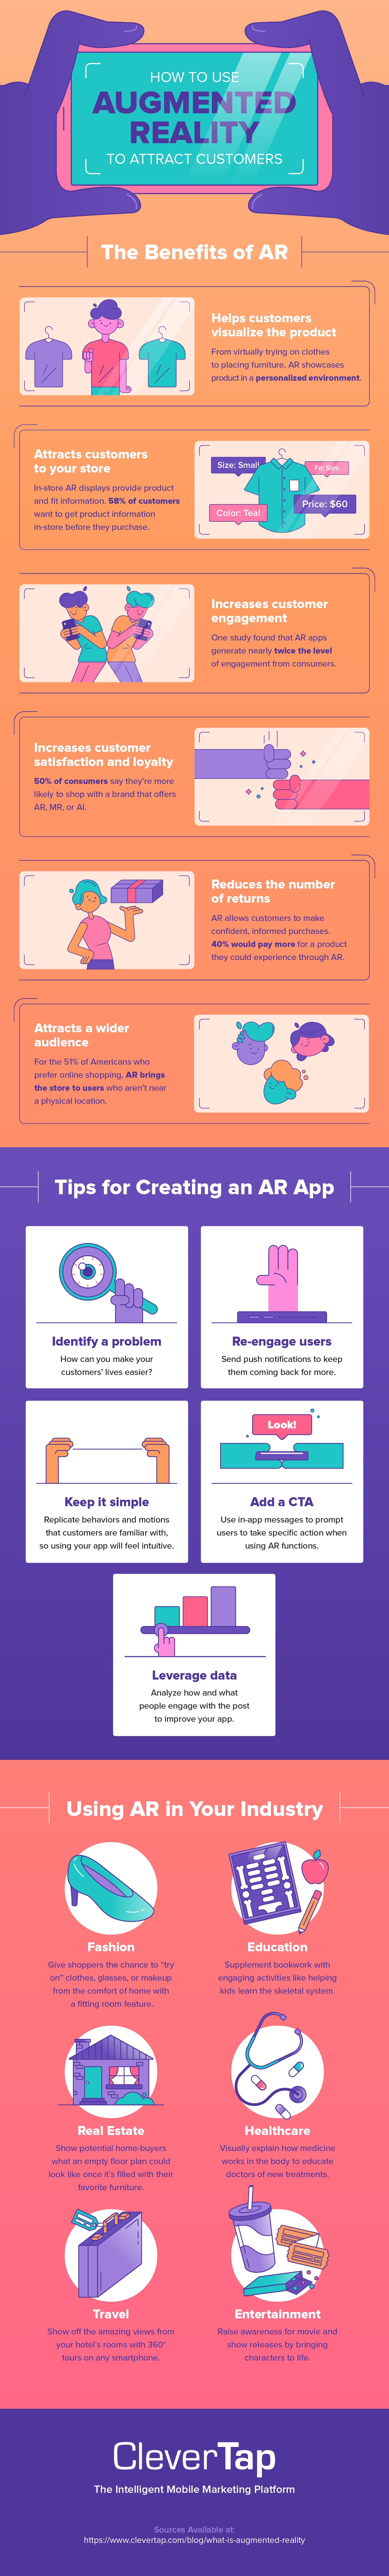 Clevertap-how-to-use-augmented-reality-to-attract-customers-infographic.1a-01